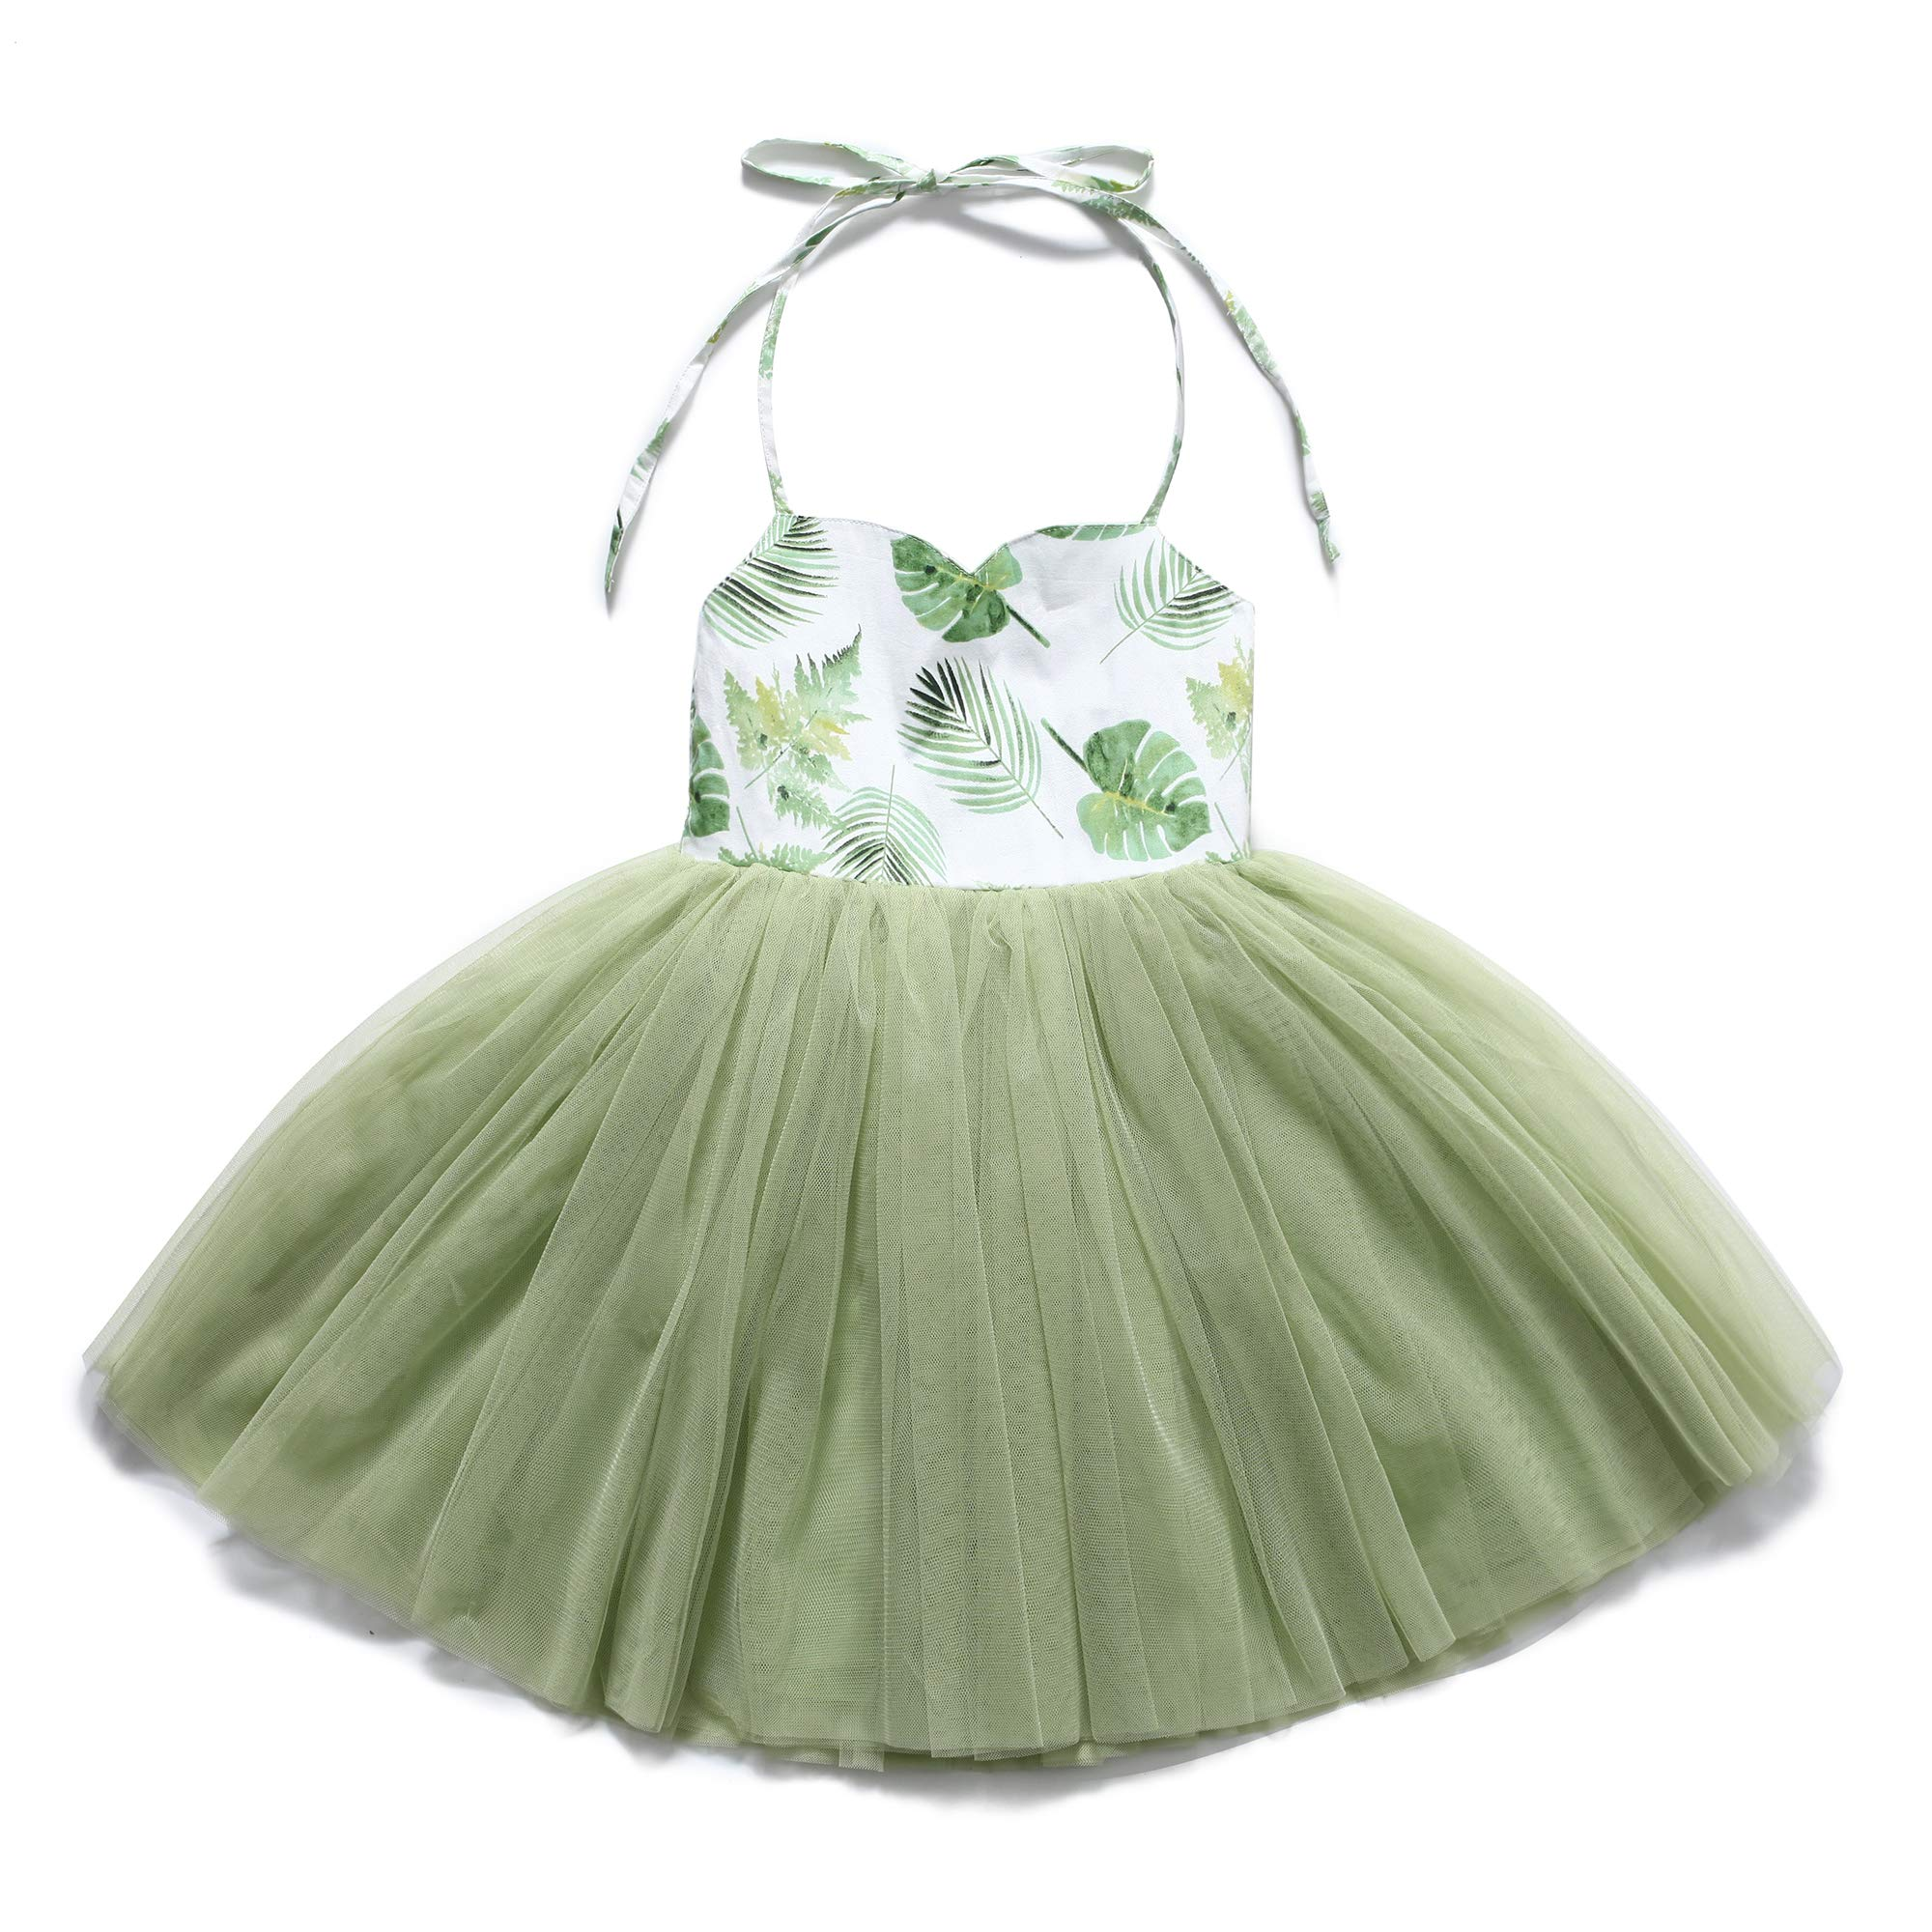 7697d66ba37d2 Best Rated in Baby Girls' Special Occasion Dresses & Helpful ...